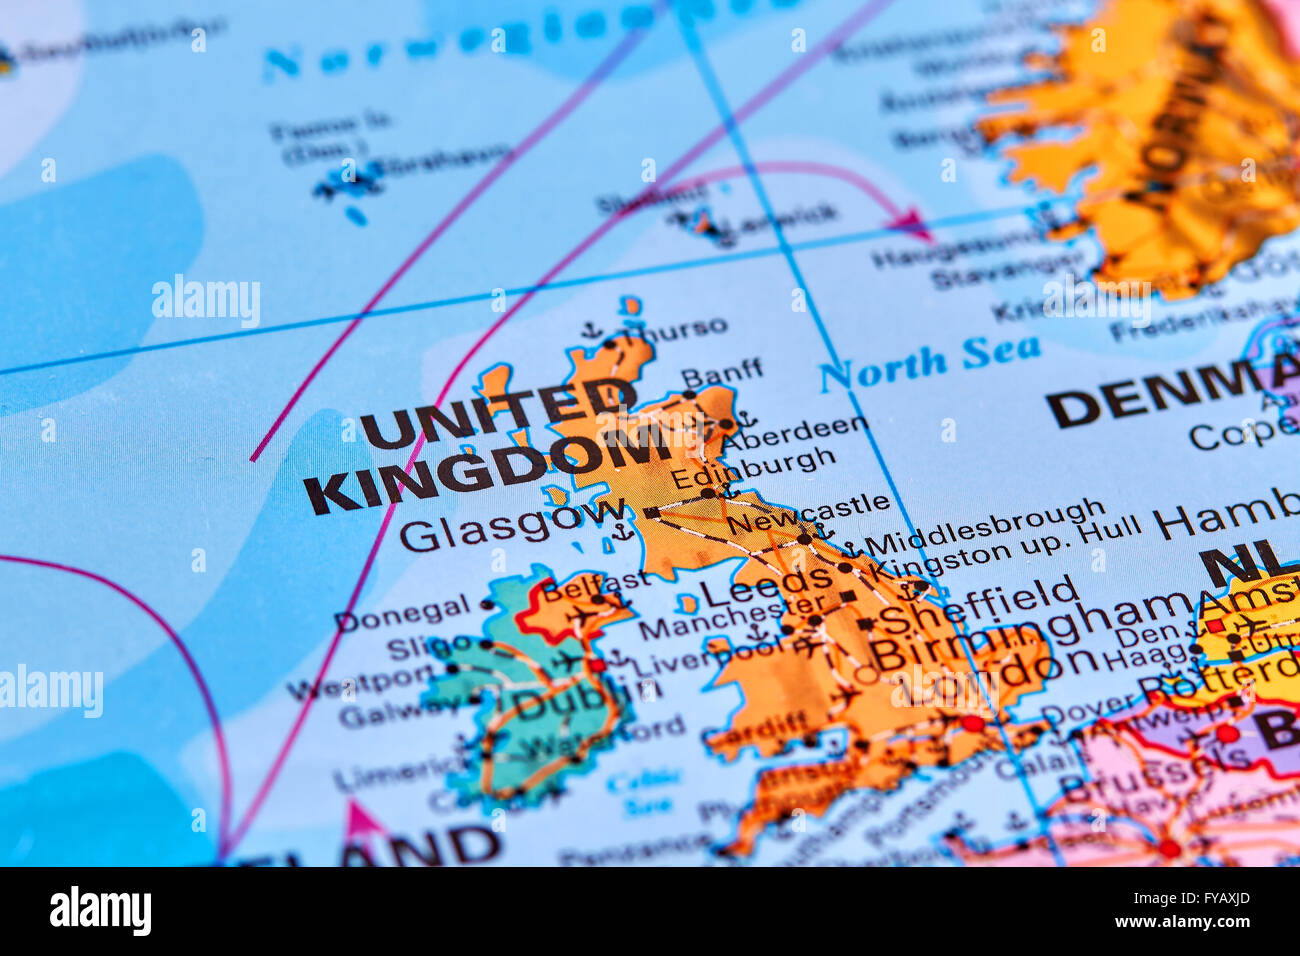 United Kingdom On The World Map.United Kingdom In Europe On The World Map Stock Photo 102887973 Alamy